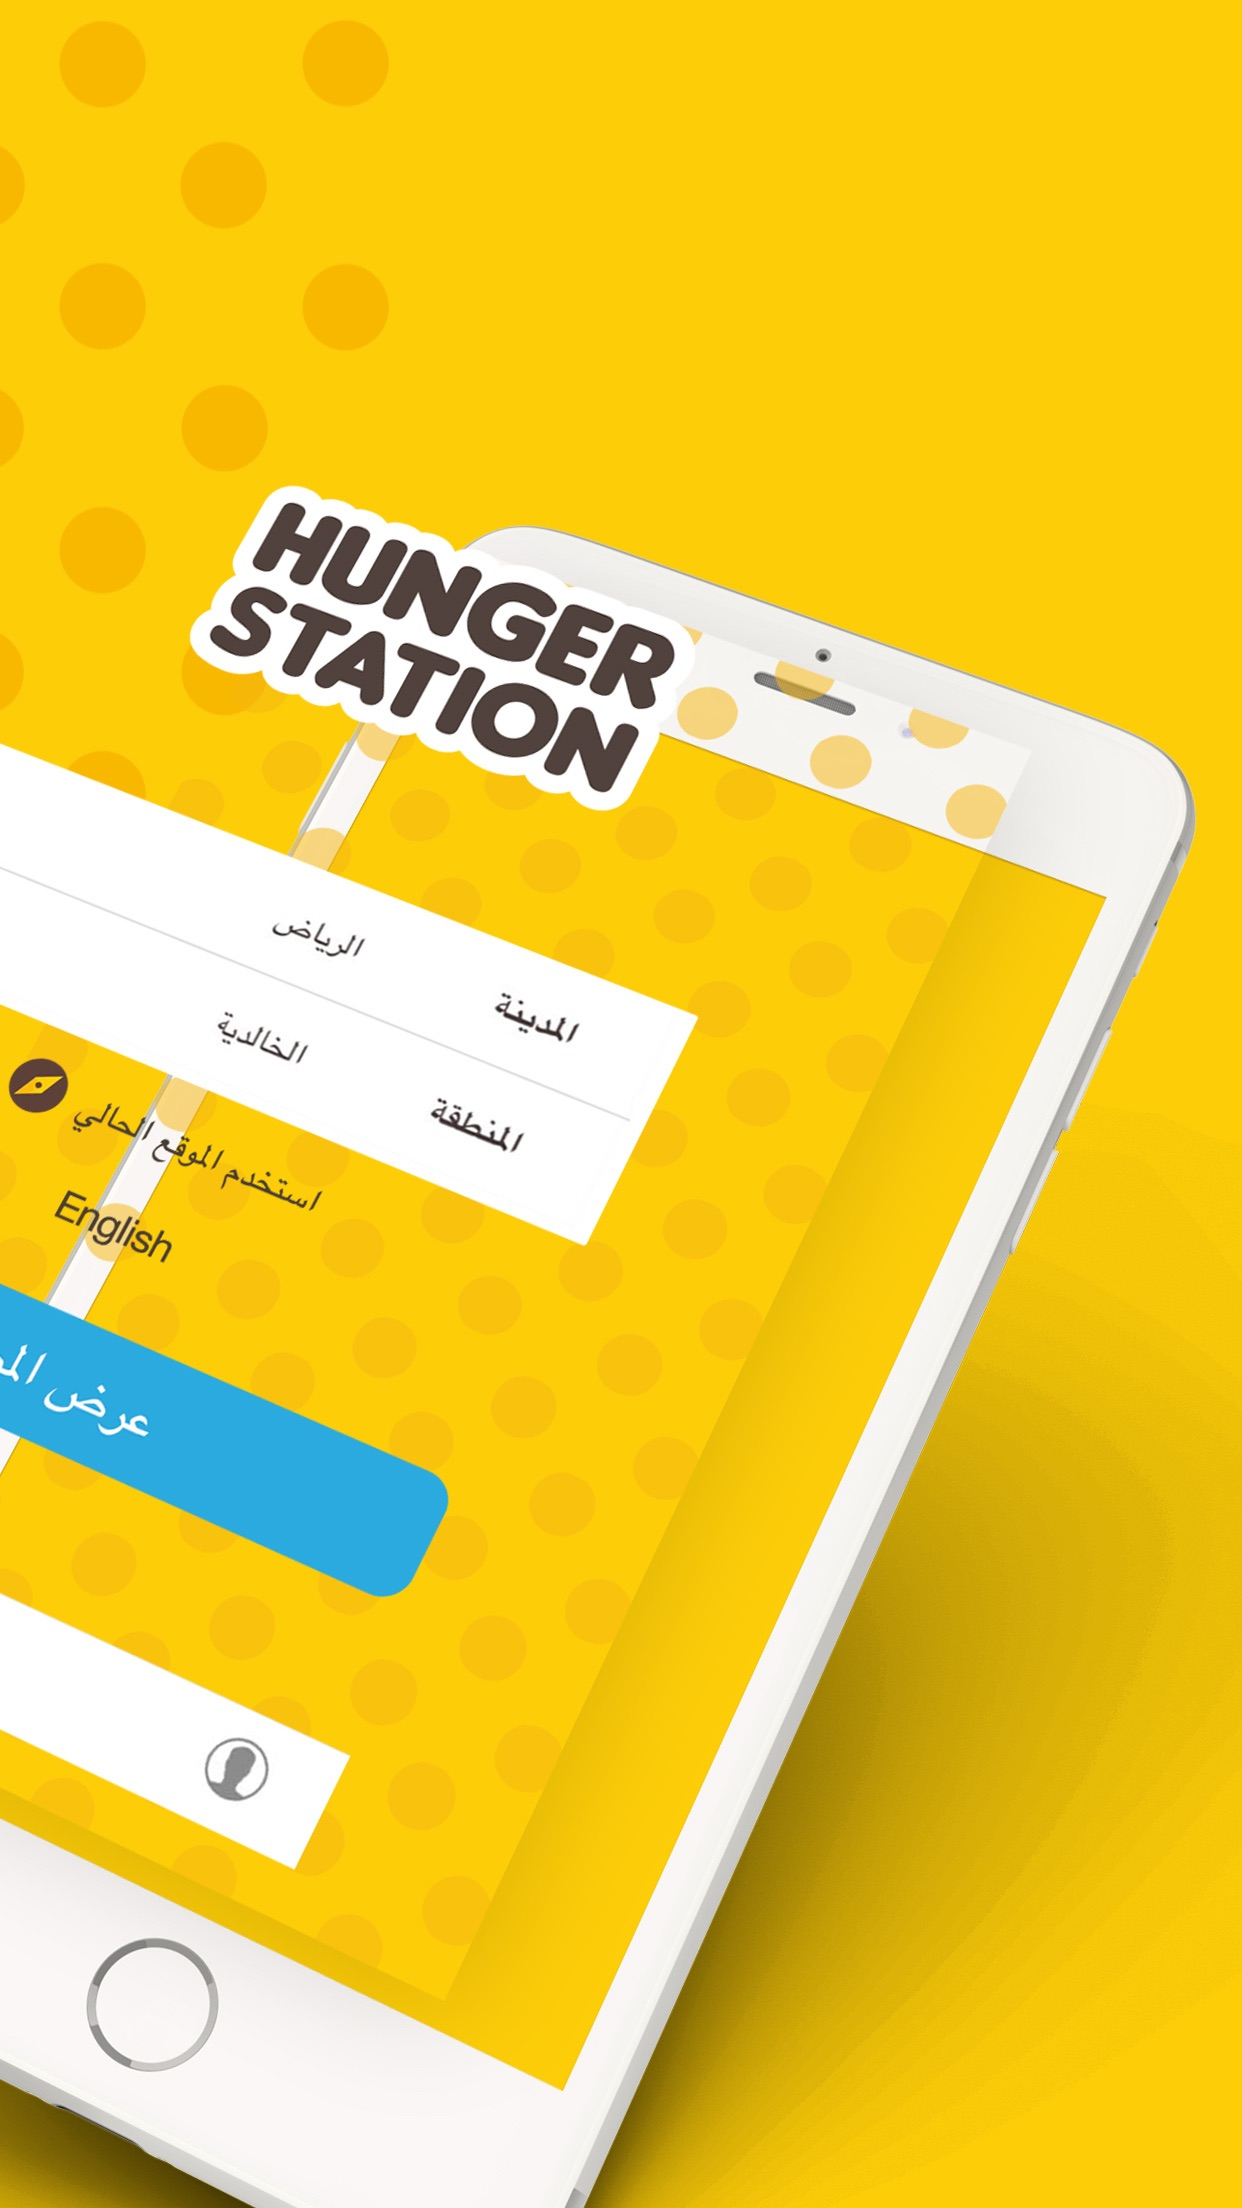 HungerStation Screenshot